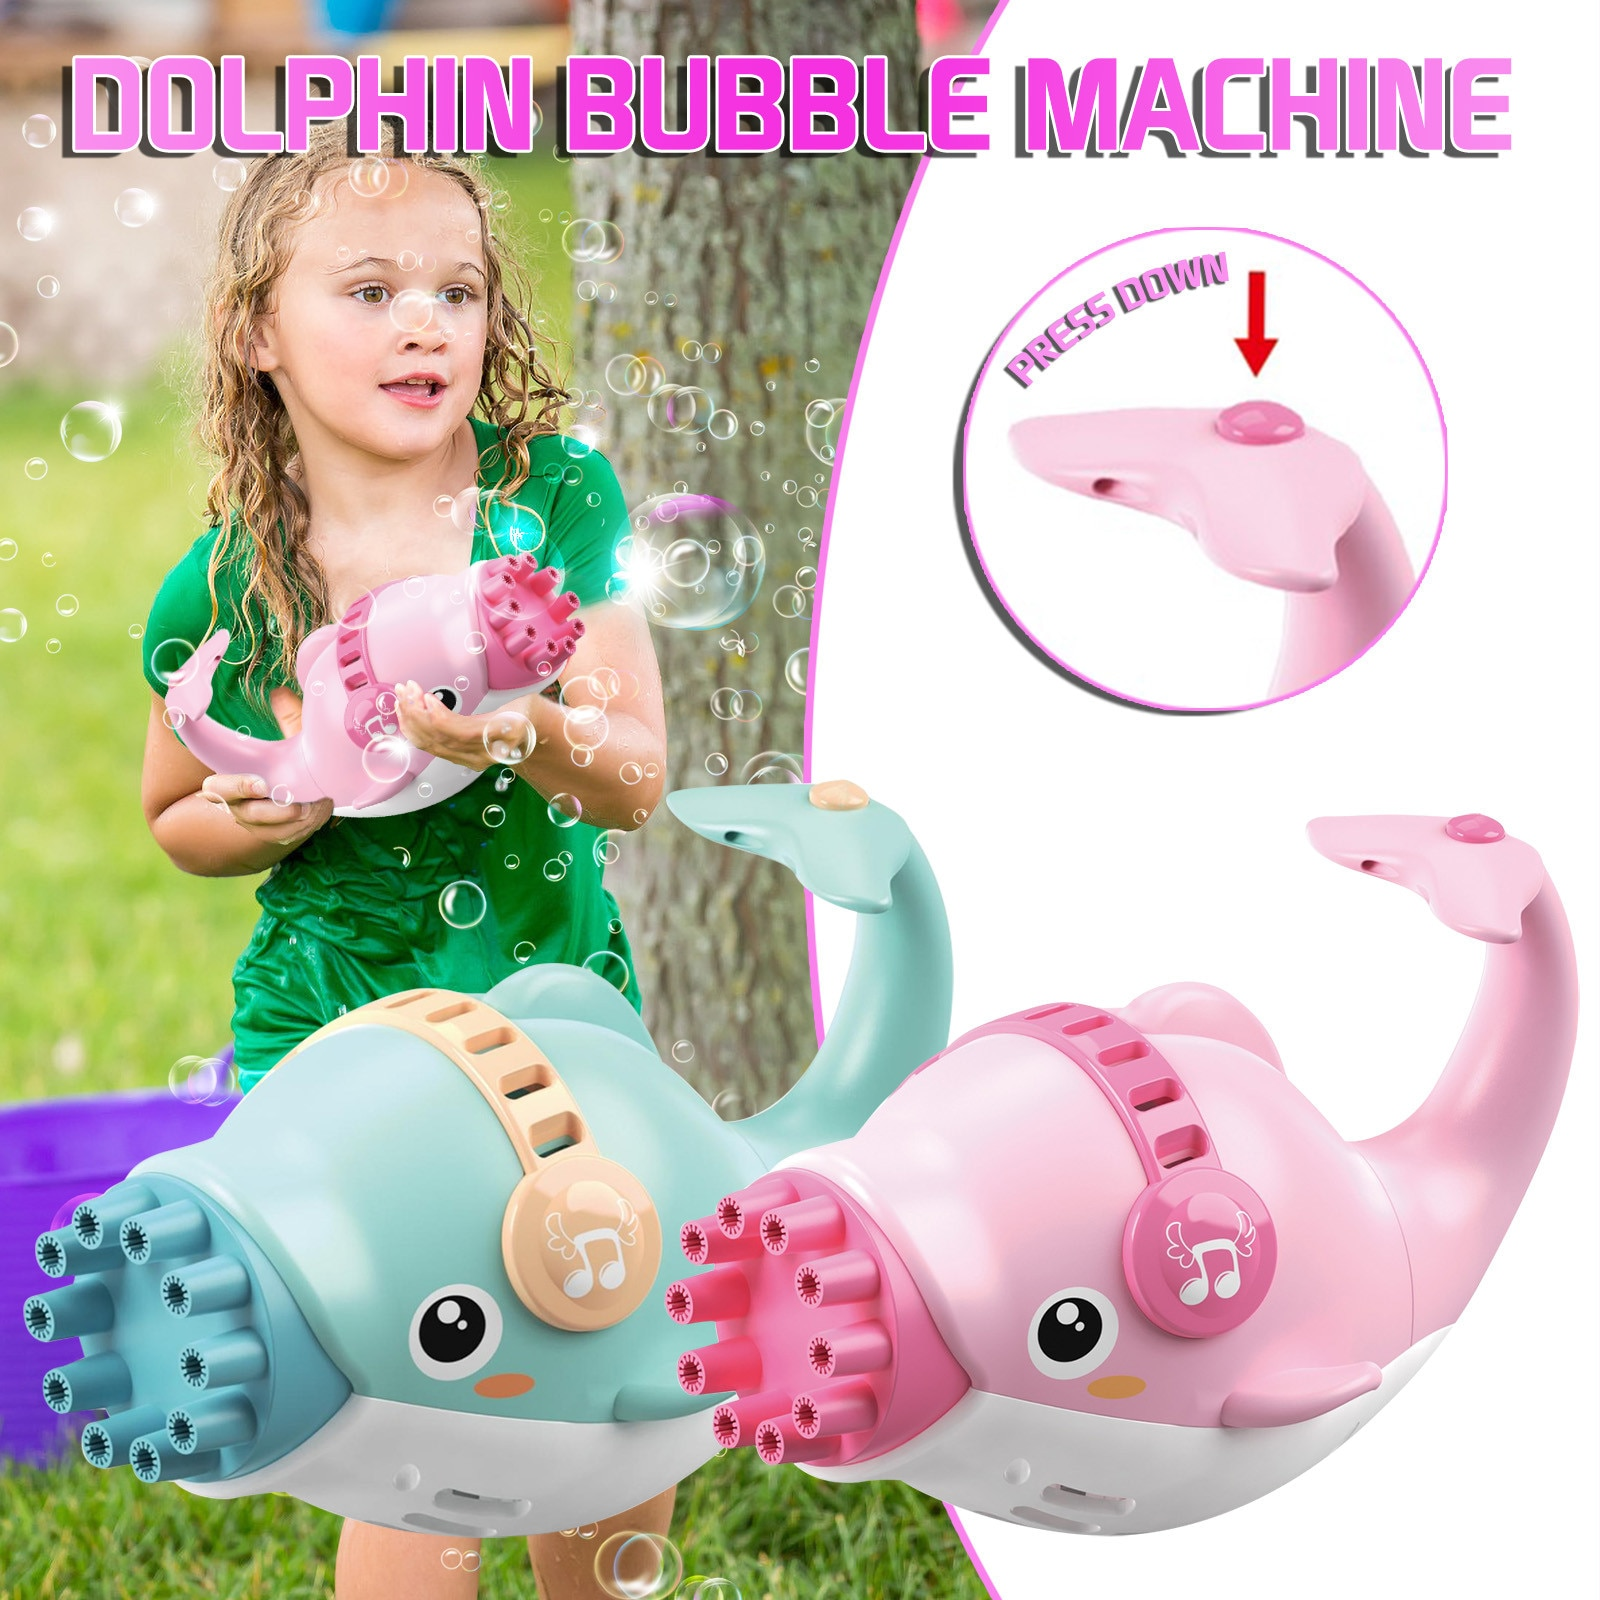 Dolphin Electric Bubble Maker, Bubble Machine Cute Toy , Whale Automatic Bubble Maker for Toddlers Boys, Girls, Outdoor Games